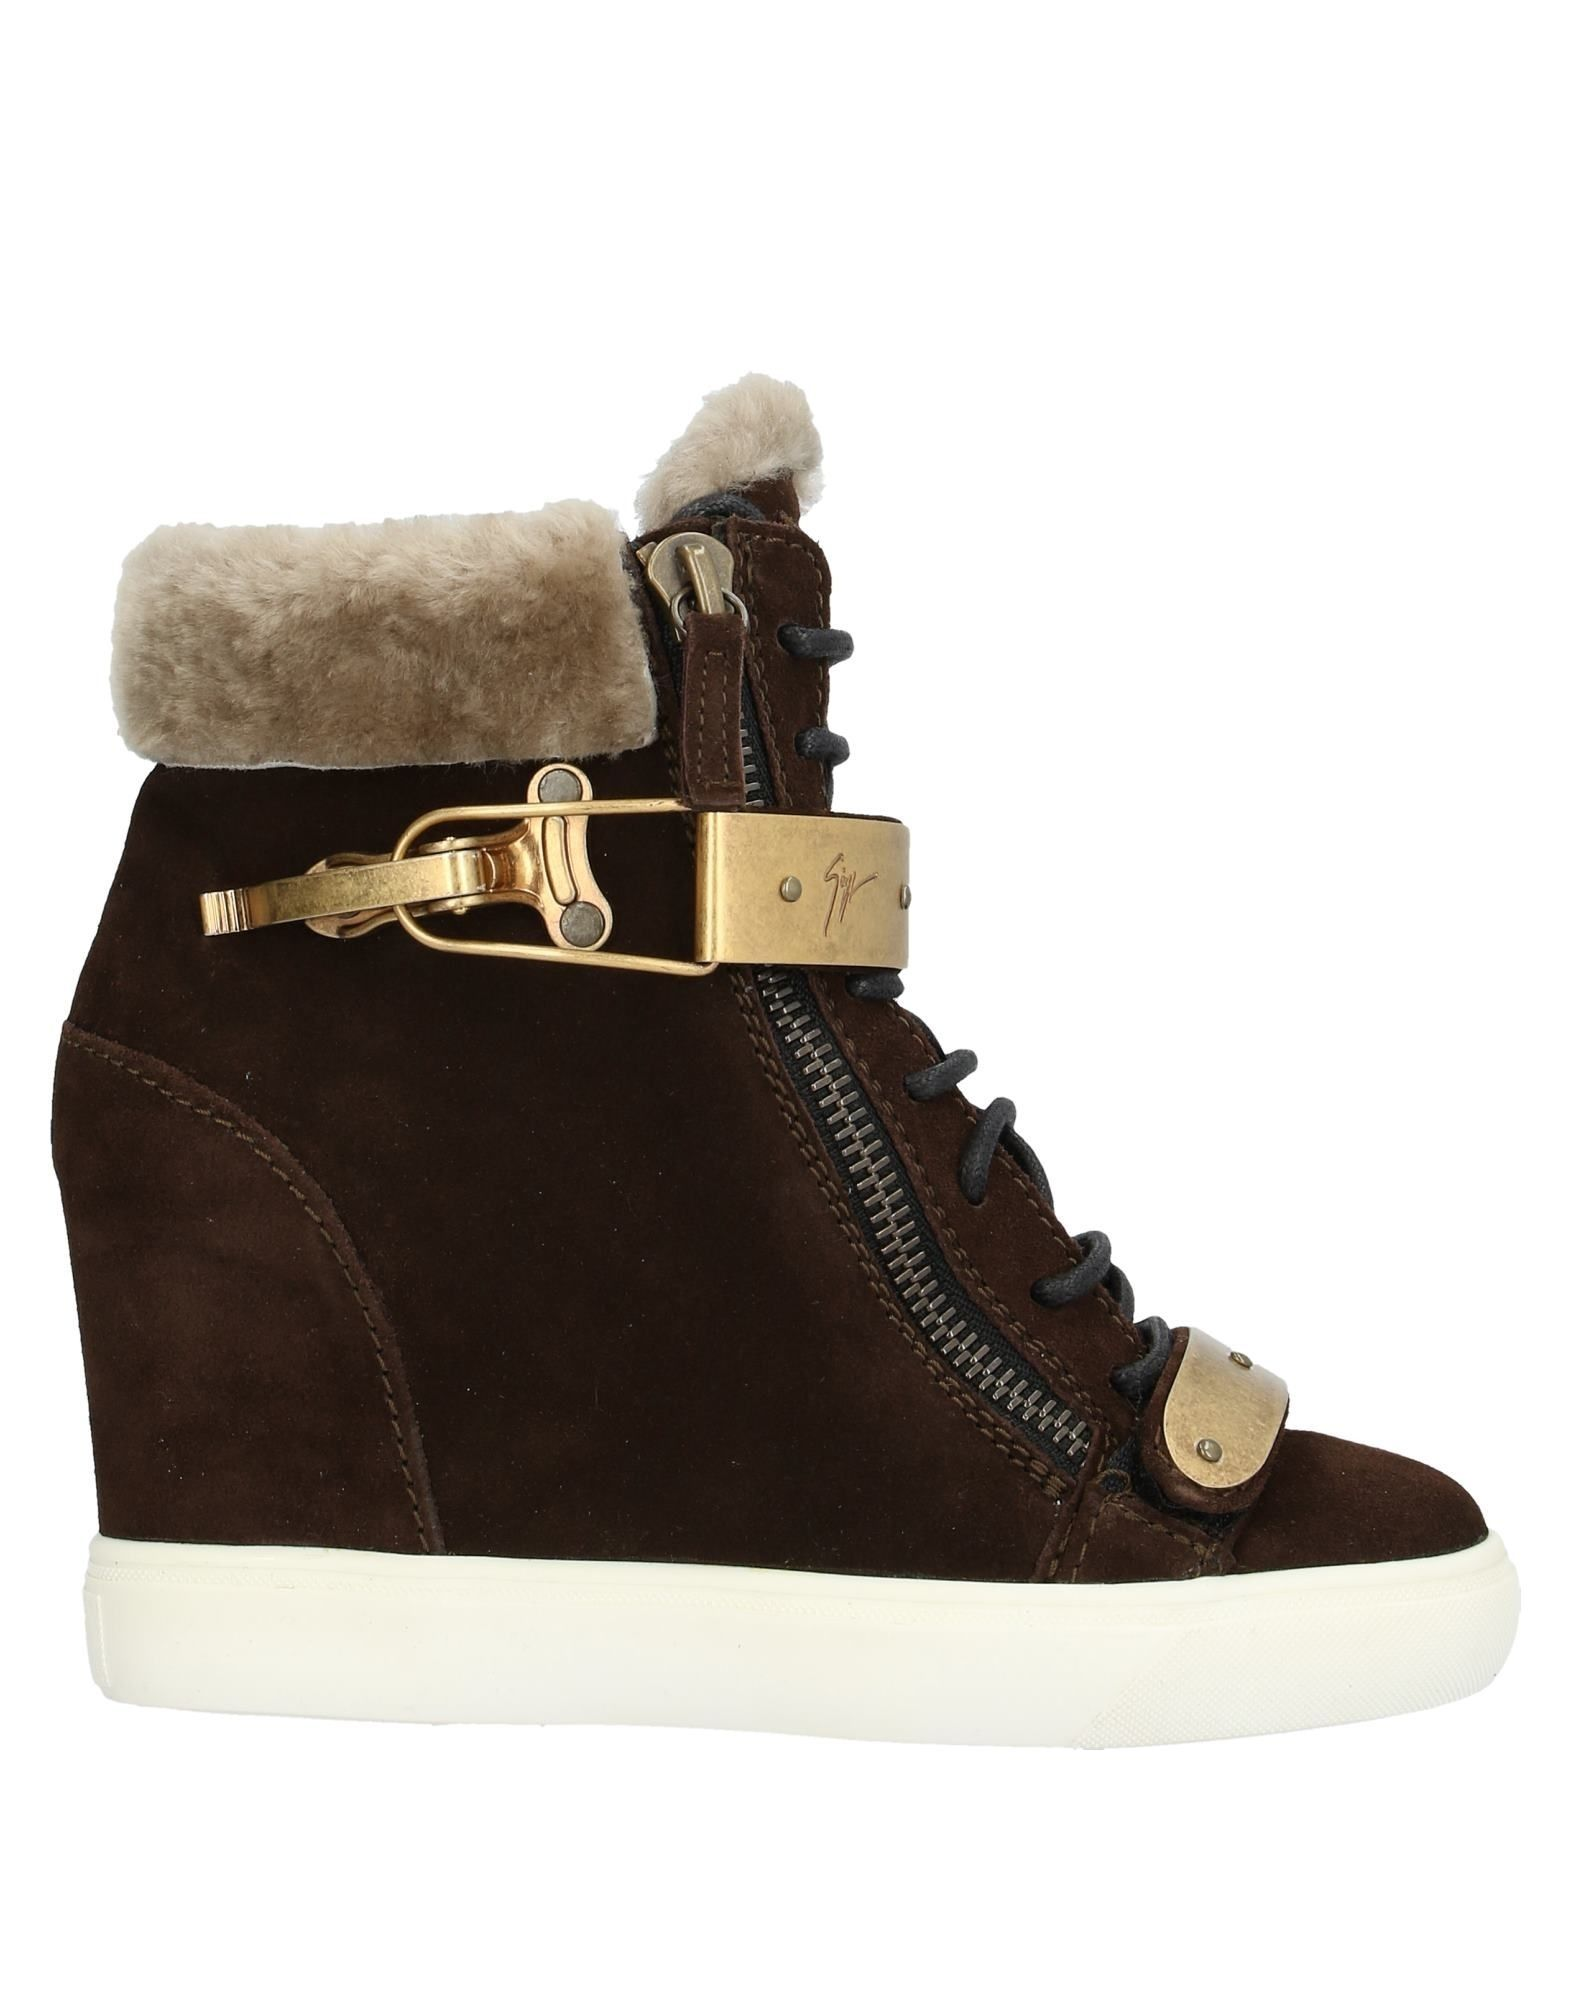 Giuseppe Zanotti Dark Brown Shearling Wedge Ankle Boots